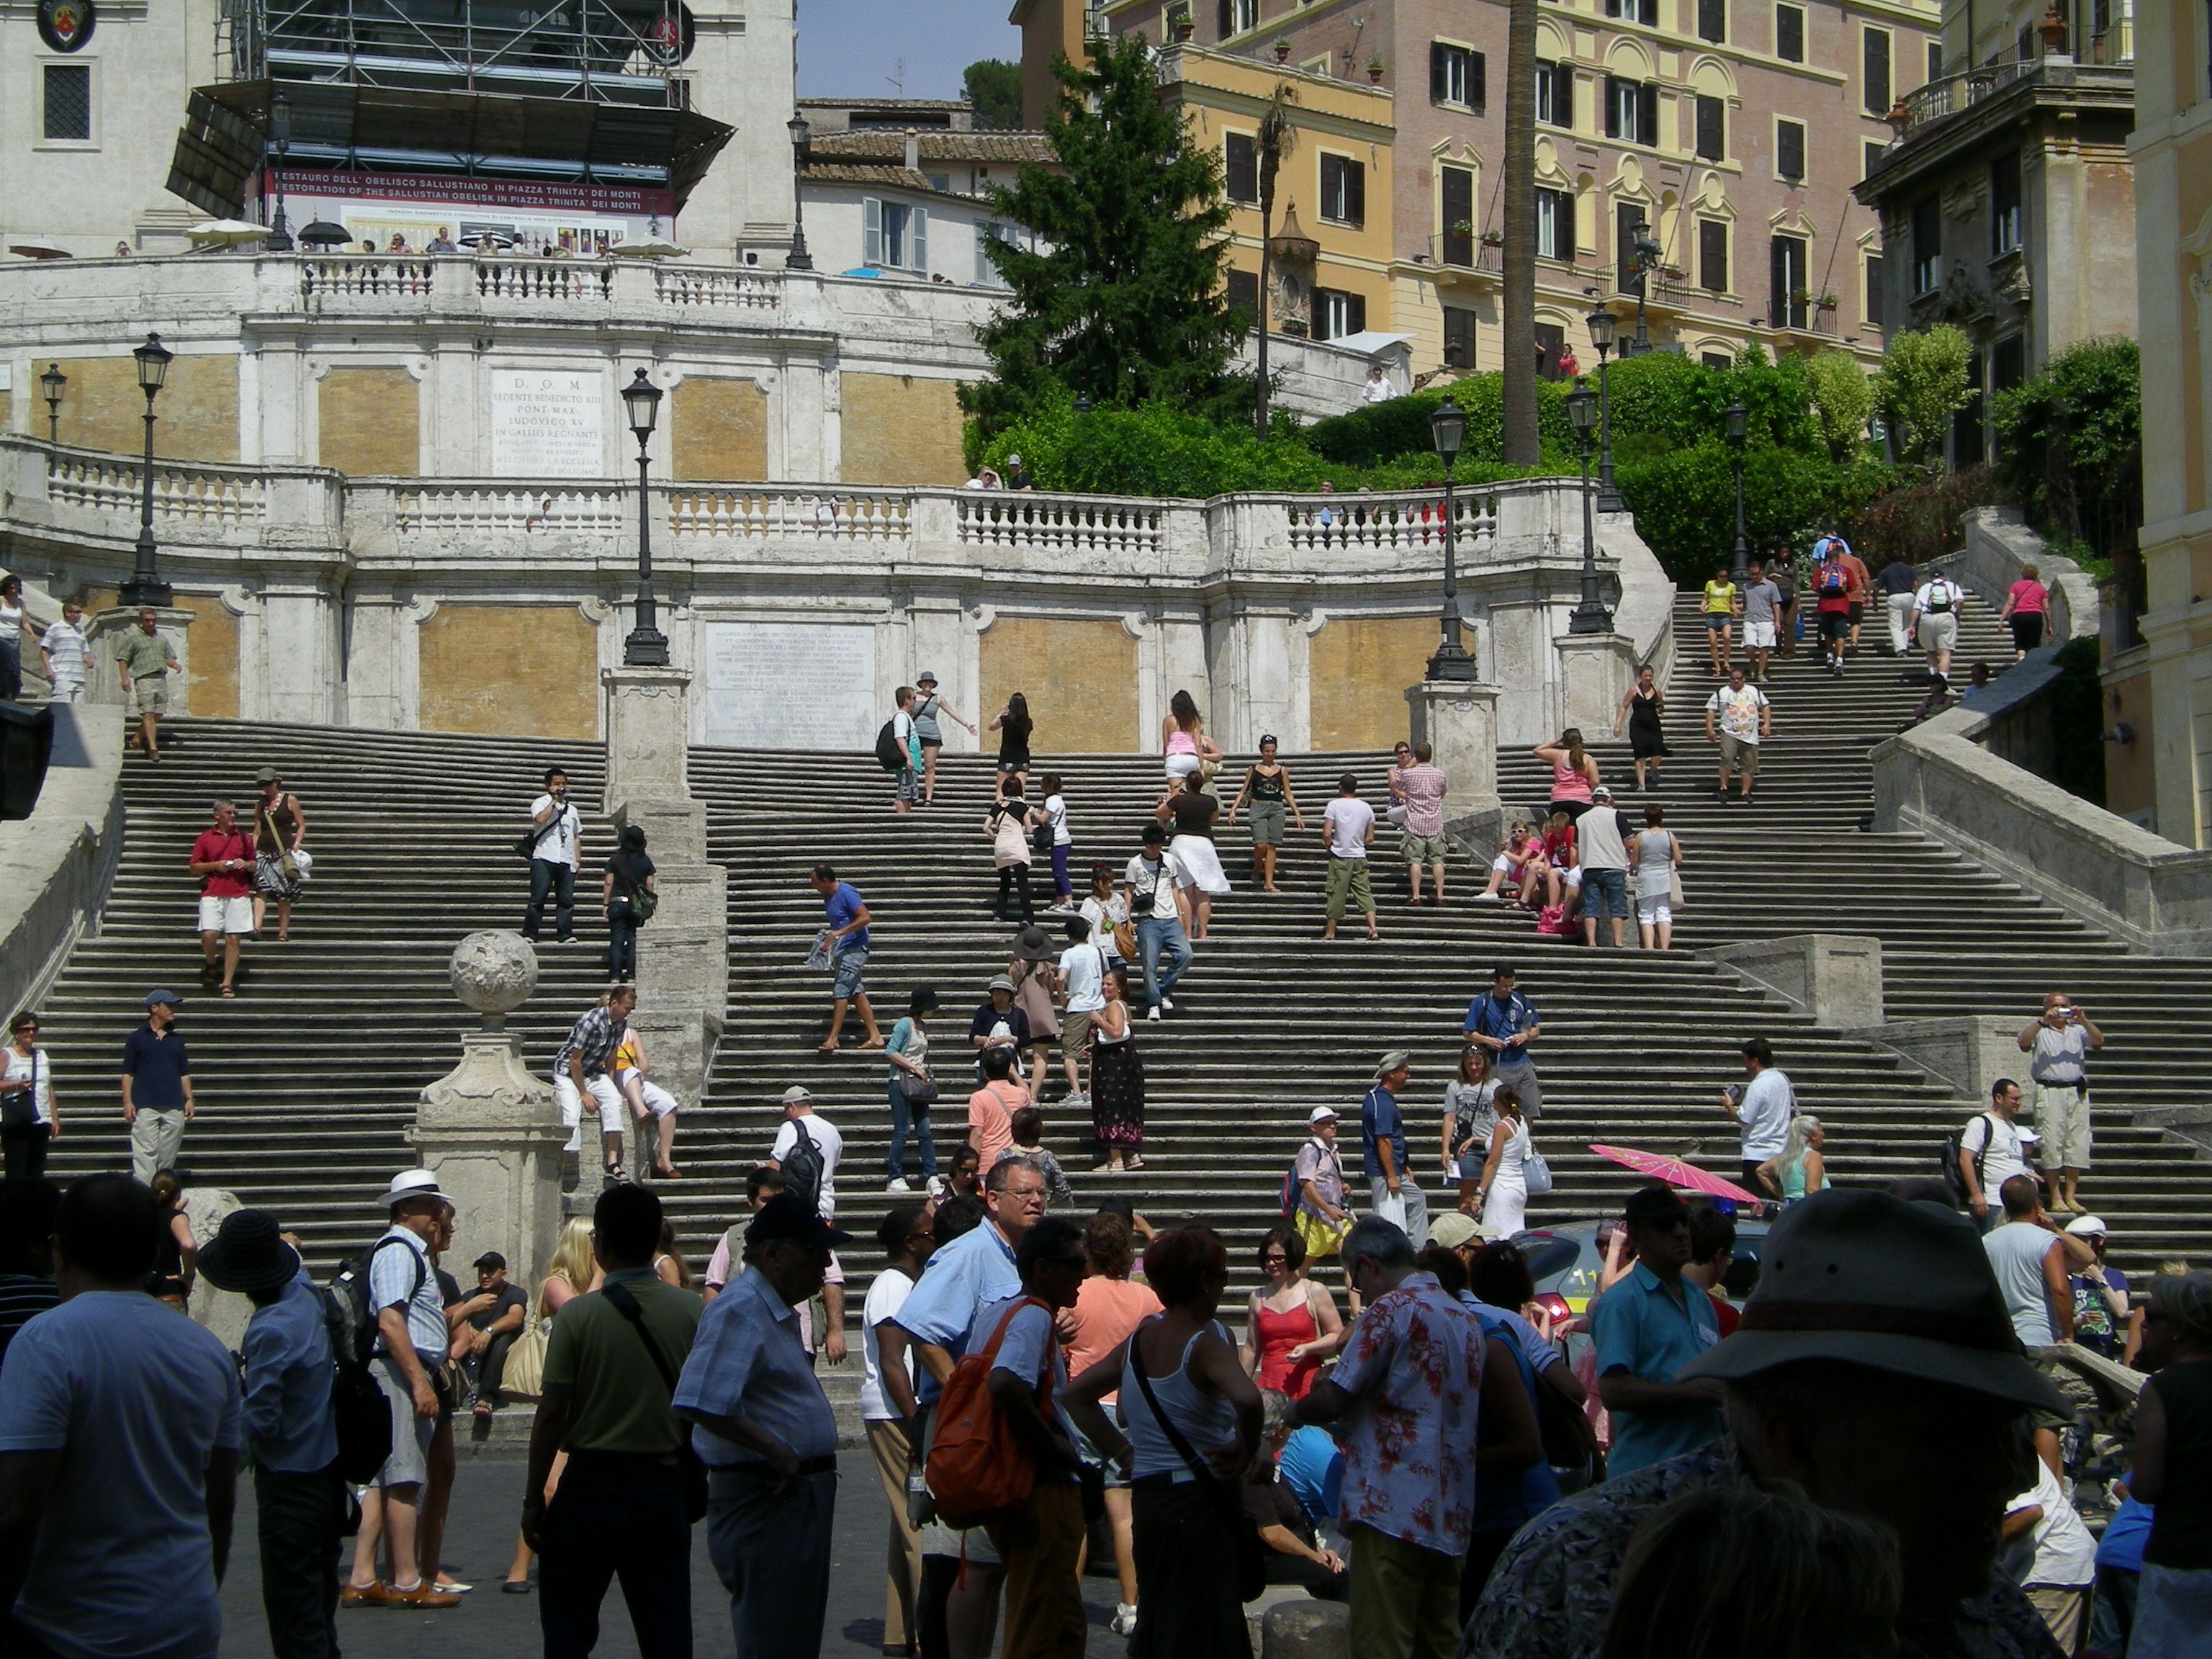 Spanish Steps in Rome, I know wierd it would be named Spanish  Steps in Rome, I know...